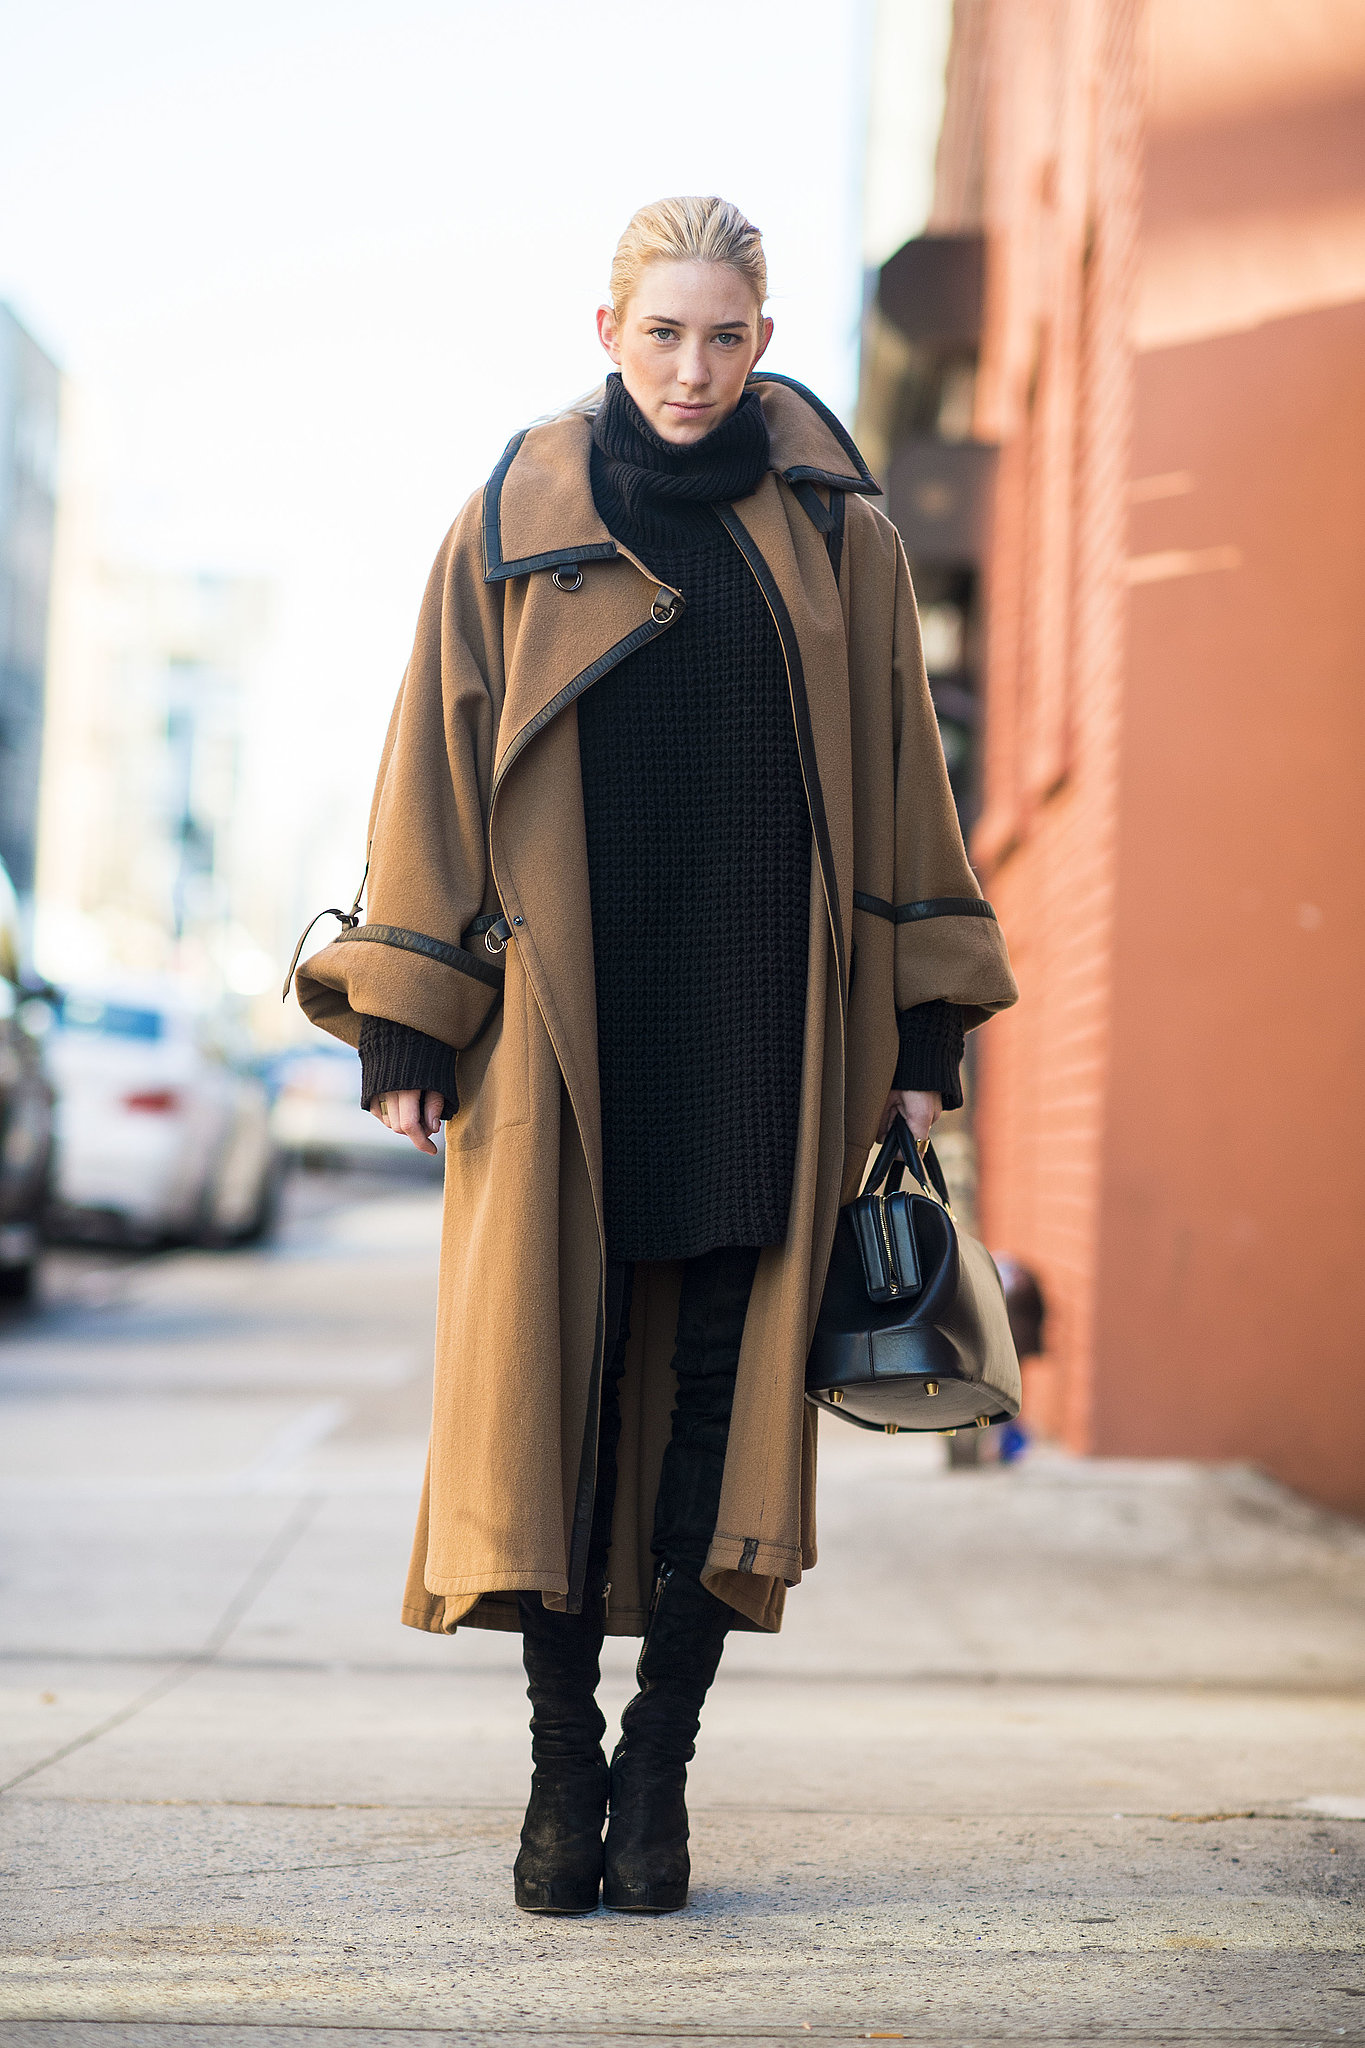 This is why we'll never tire of a great coat — invest in one and wear it proudly all season. Source: Le 21ème | Adam Katz Sinding